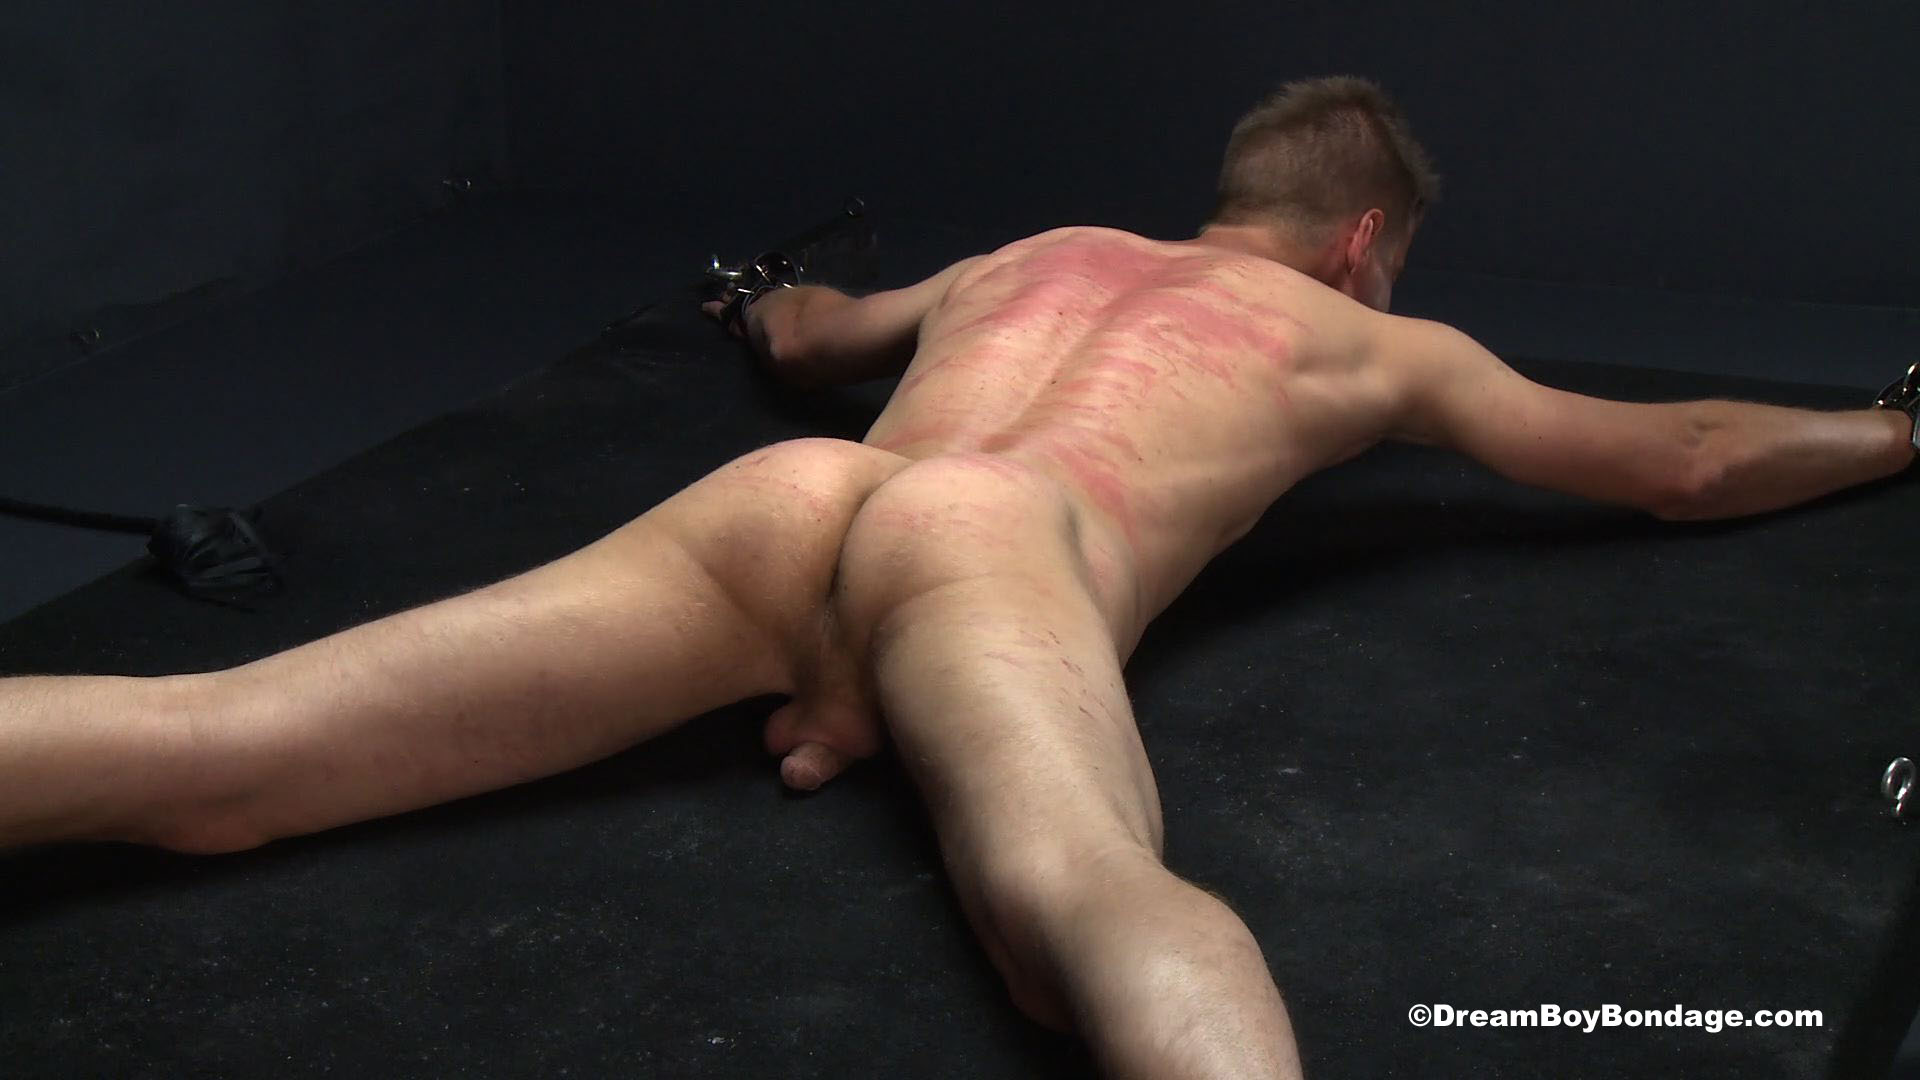 Site free Dream bondage boys while others